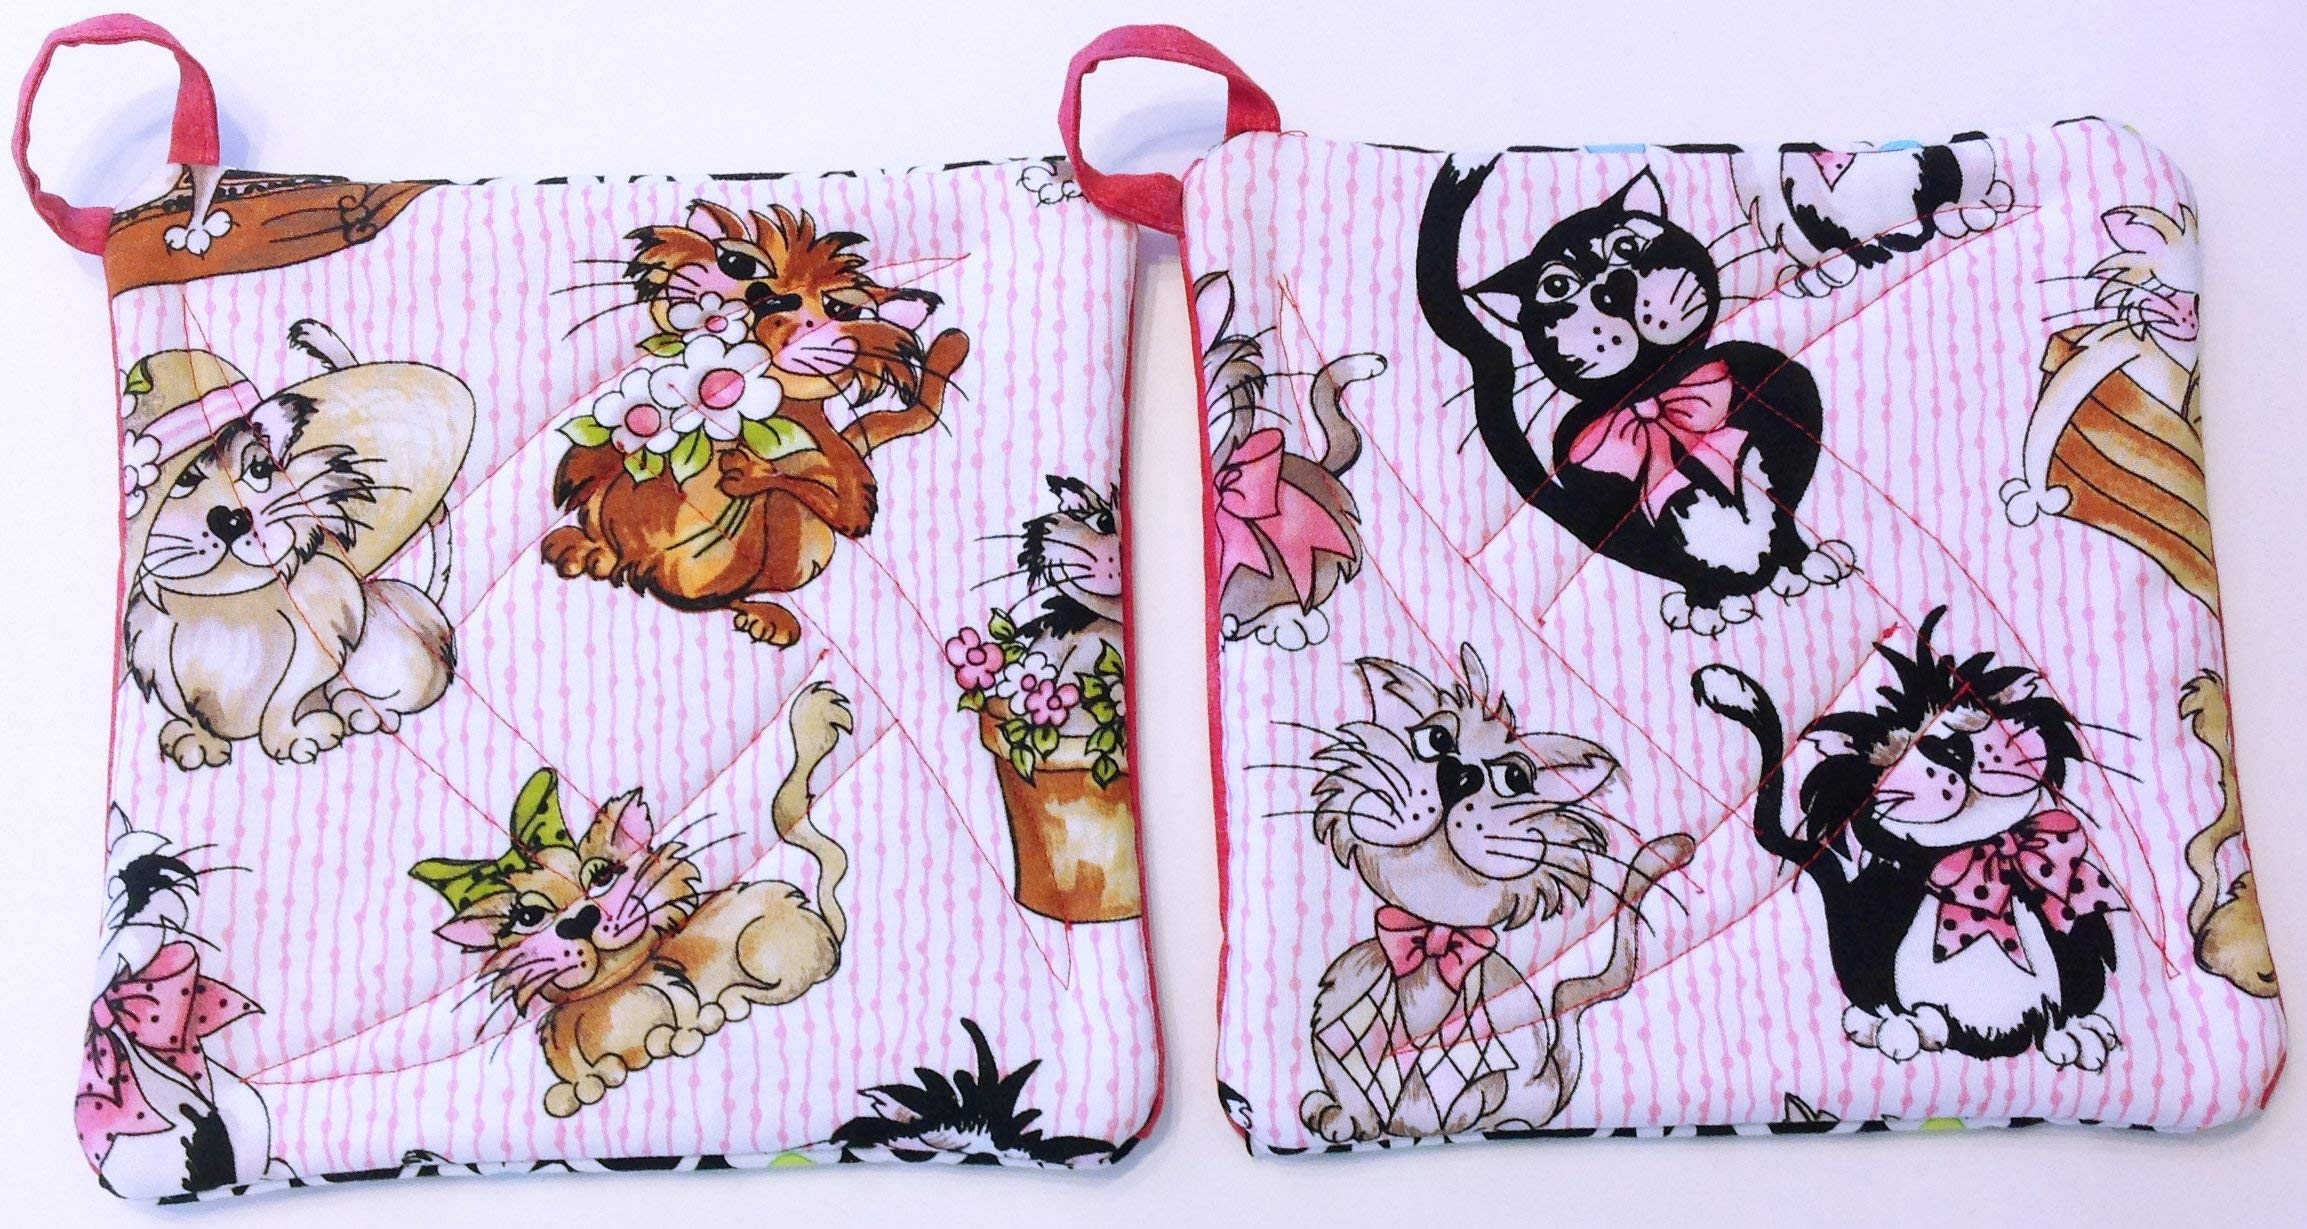 Handmade Reversible Quilted Potholders | Heat Resistant | Kitten Design | Set includes 2 potholders by Oh So Chic Boutique (Image #3)